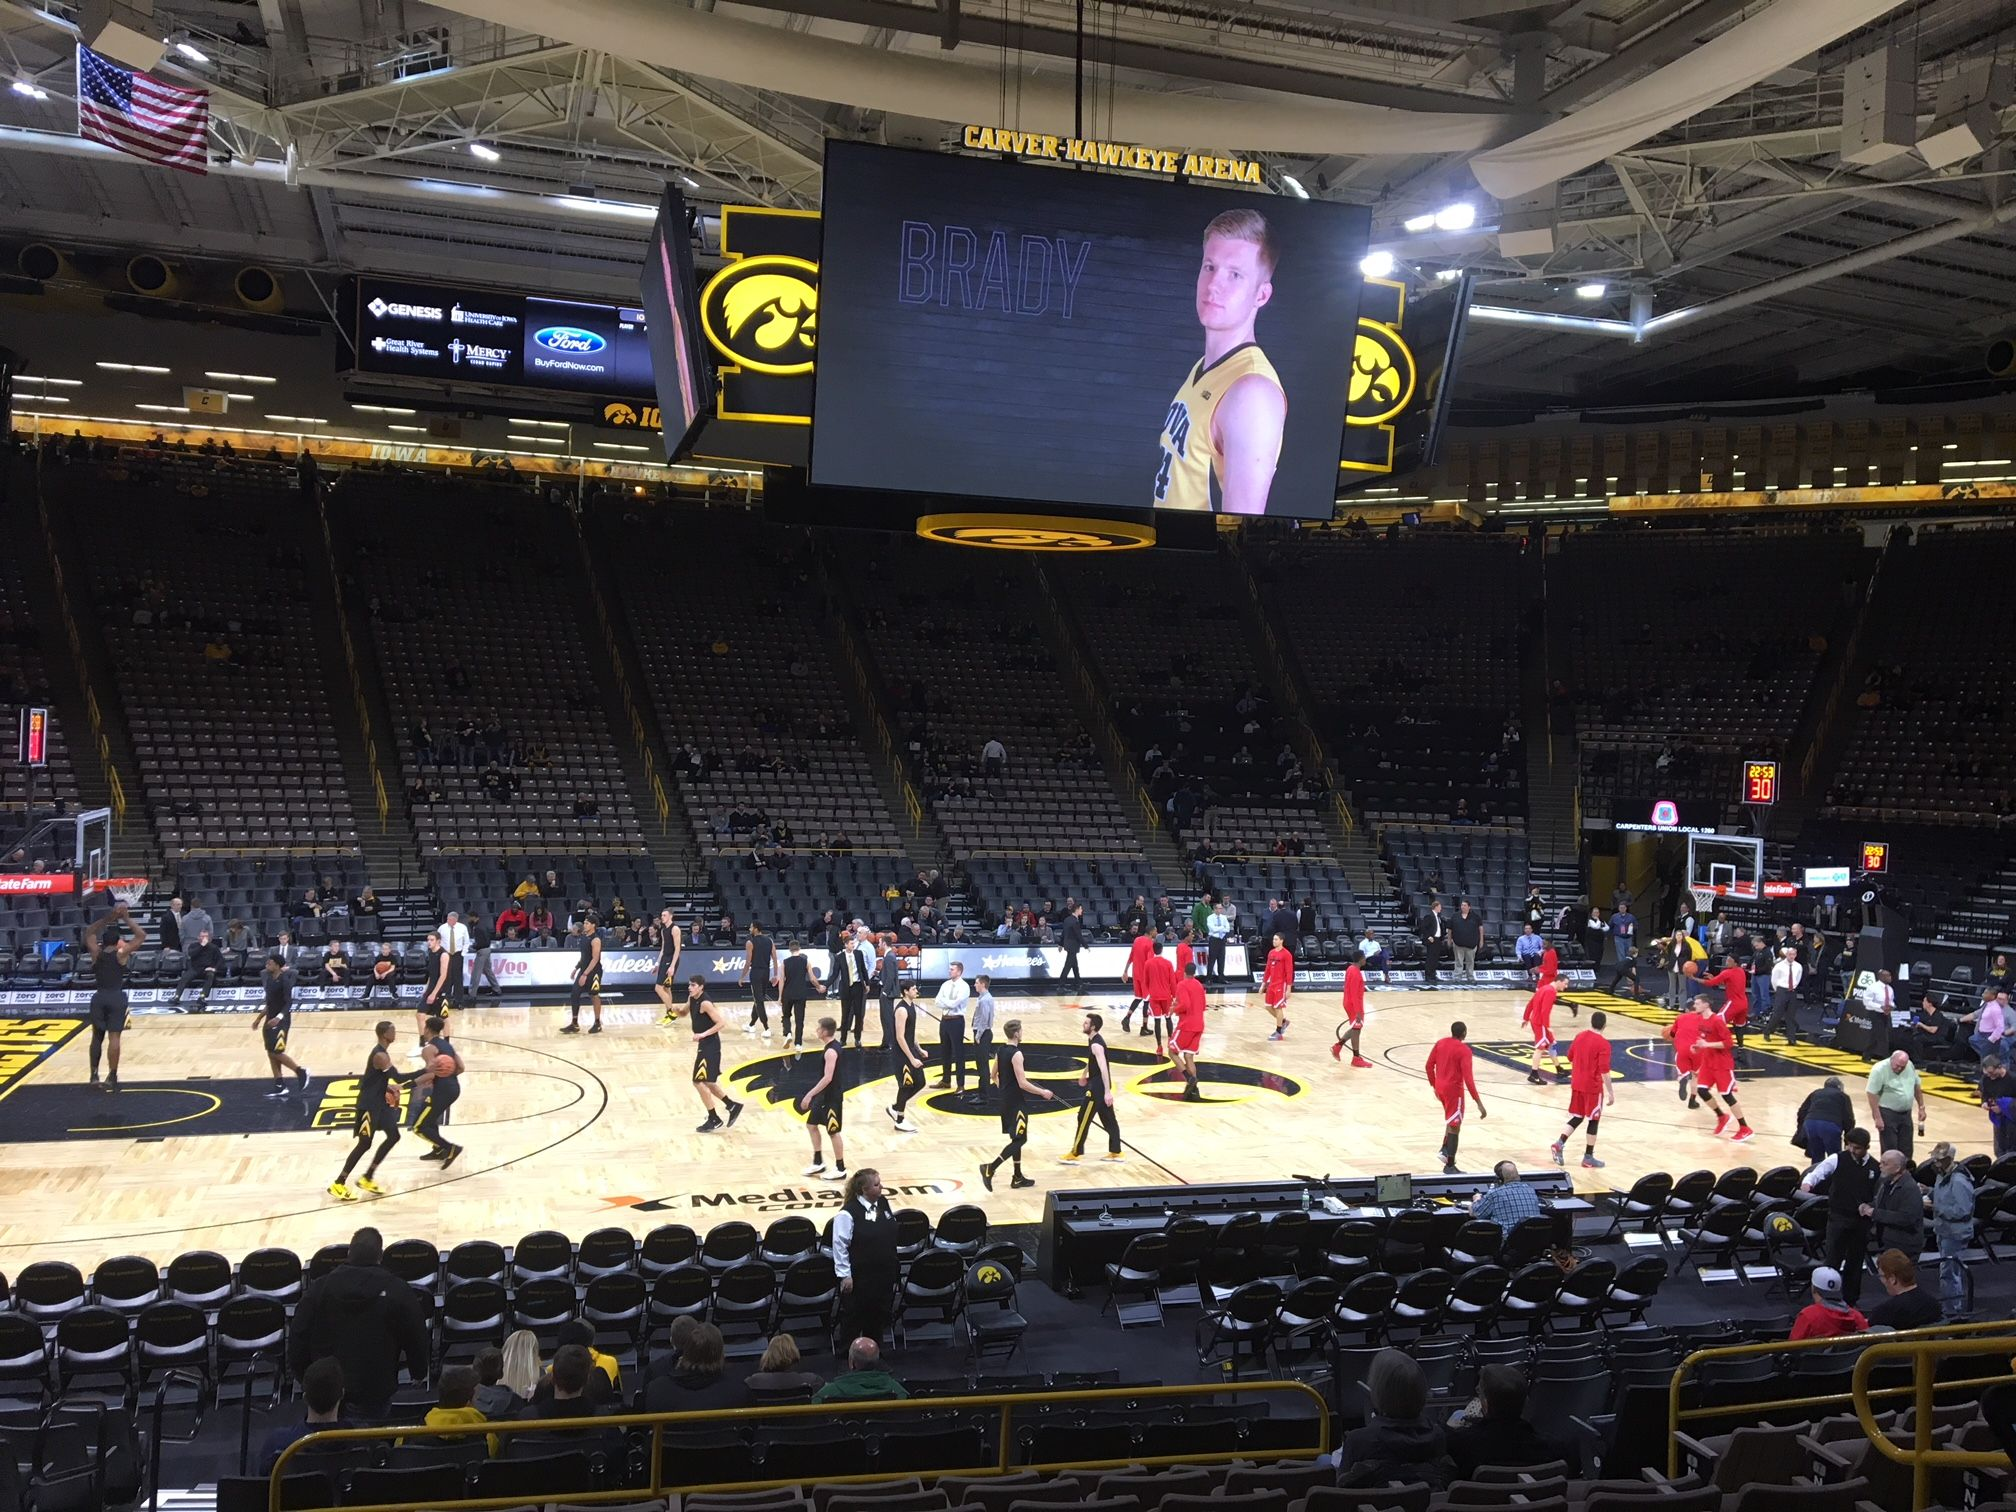 Seat View for Carver-Hawkeye Arena Section N, Row 15, Seat 7